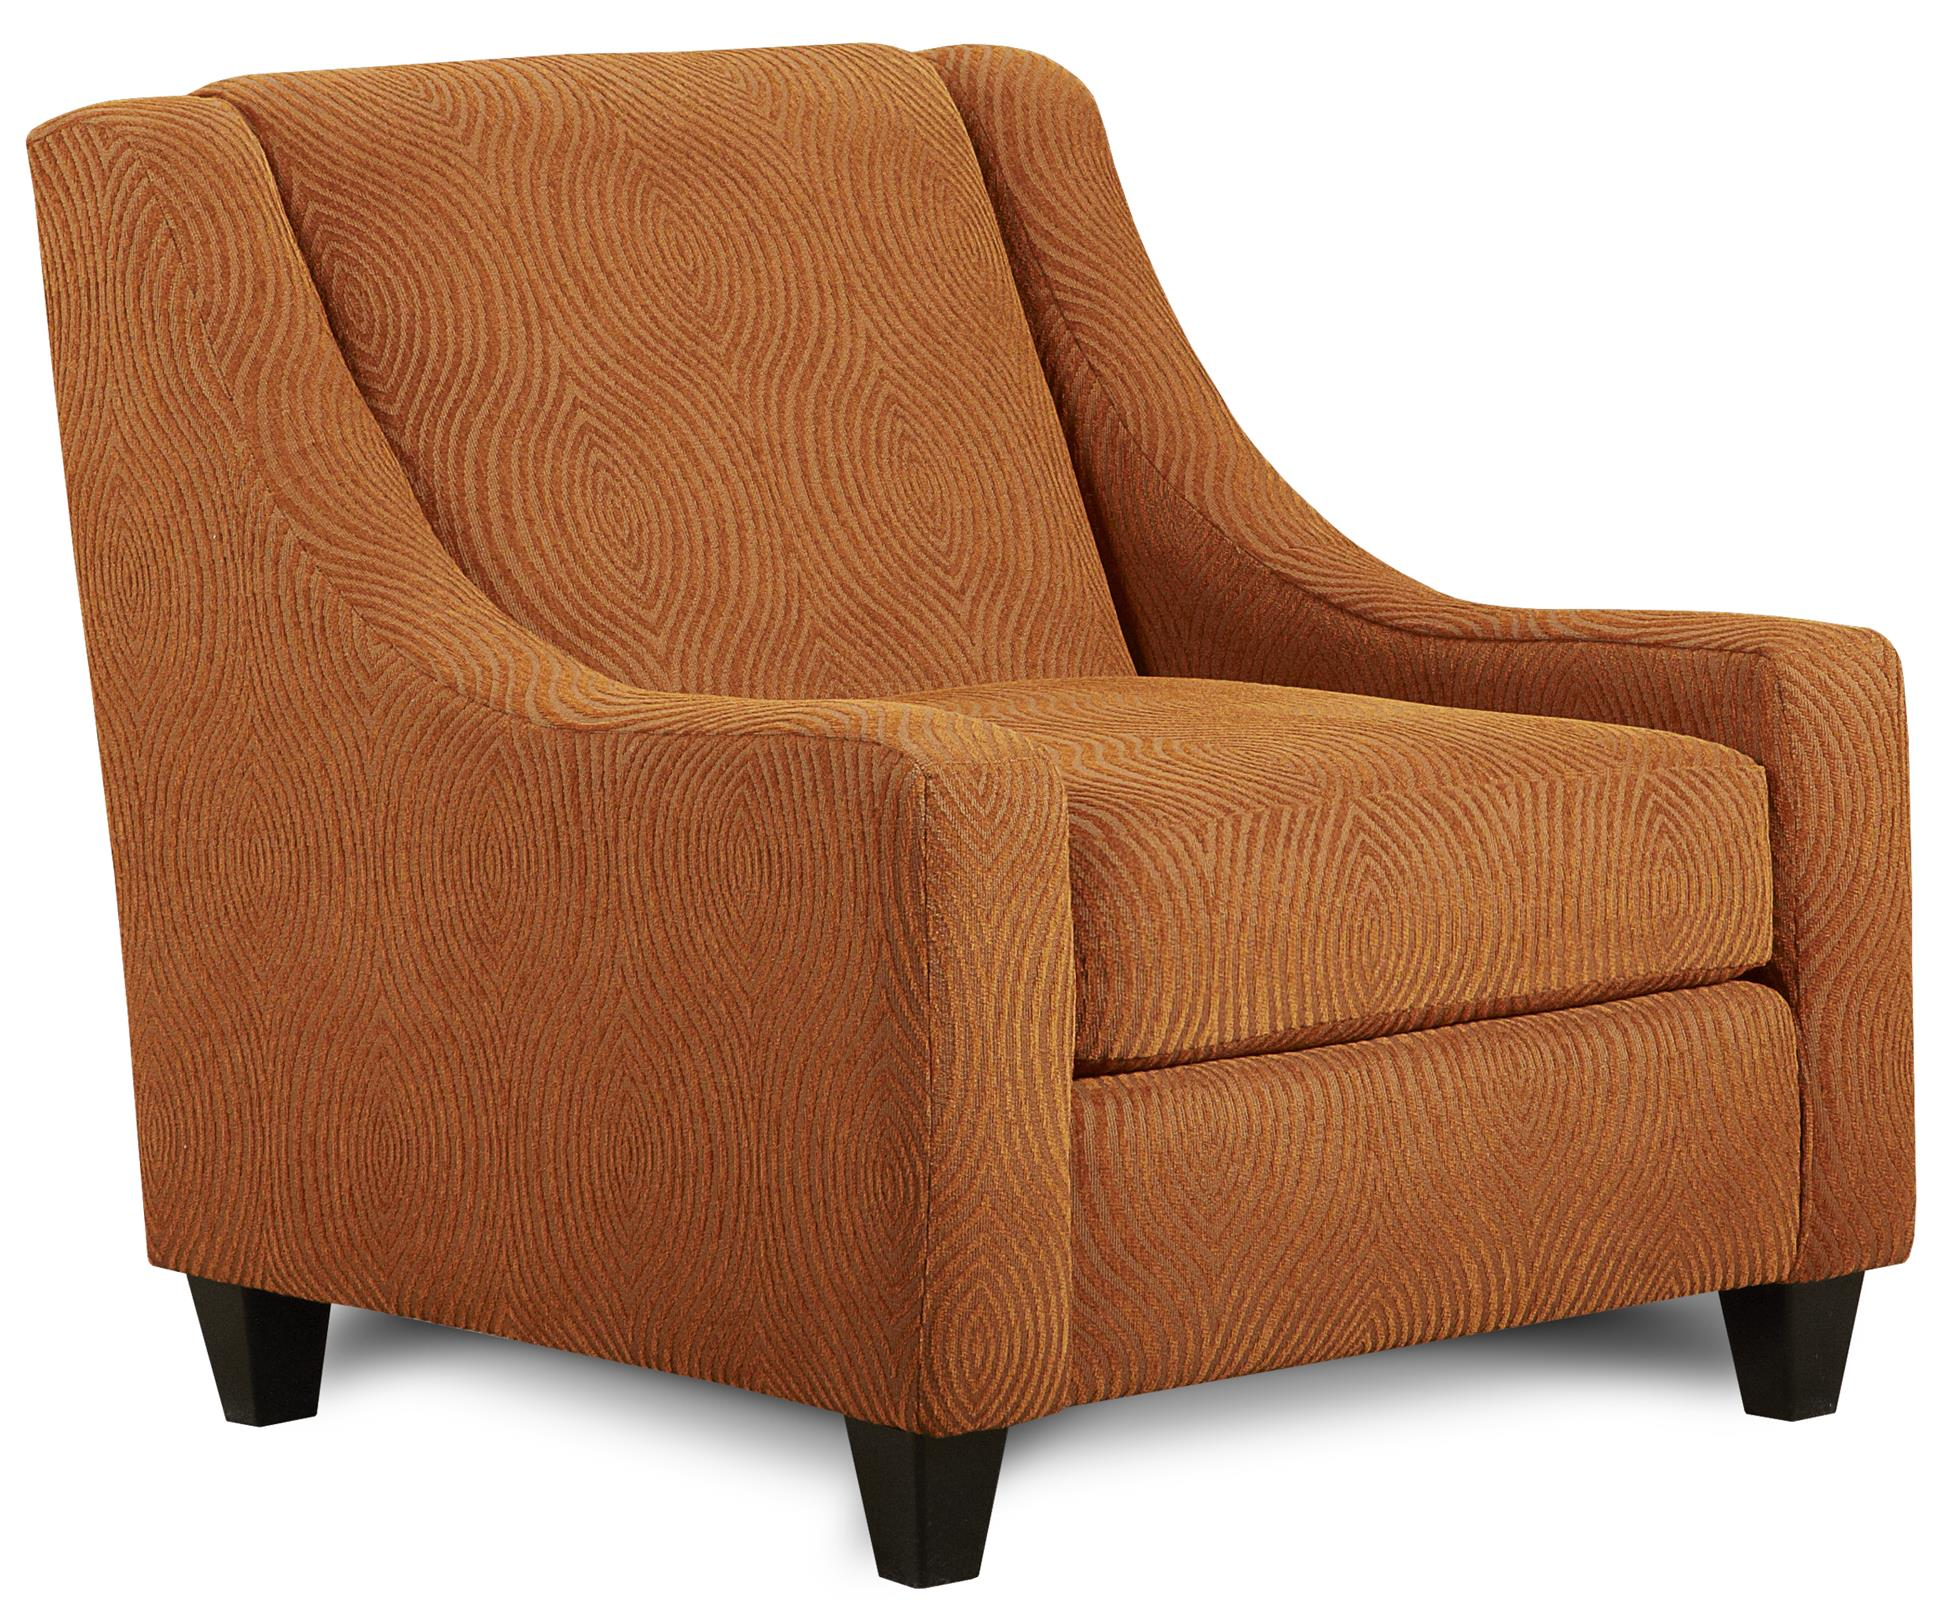 Orange accent chair - Fusion Furniture 552 Accent Chair Item Number 552spinoff Orange